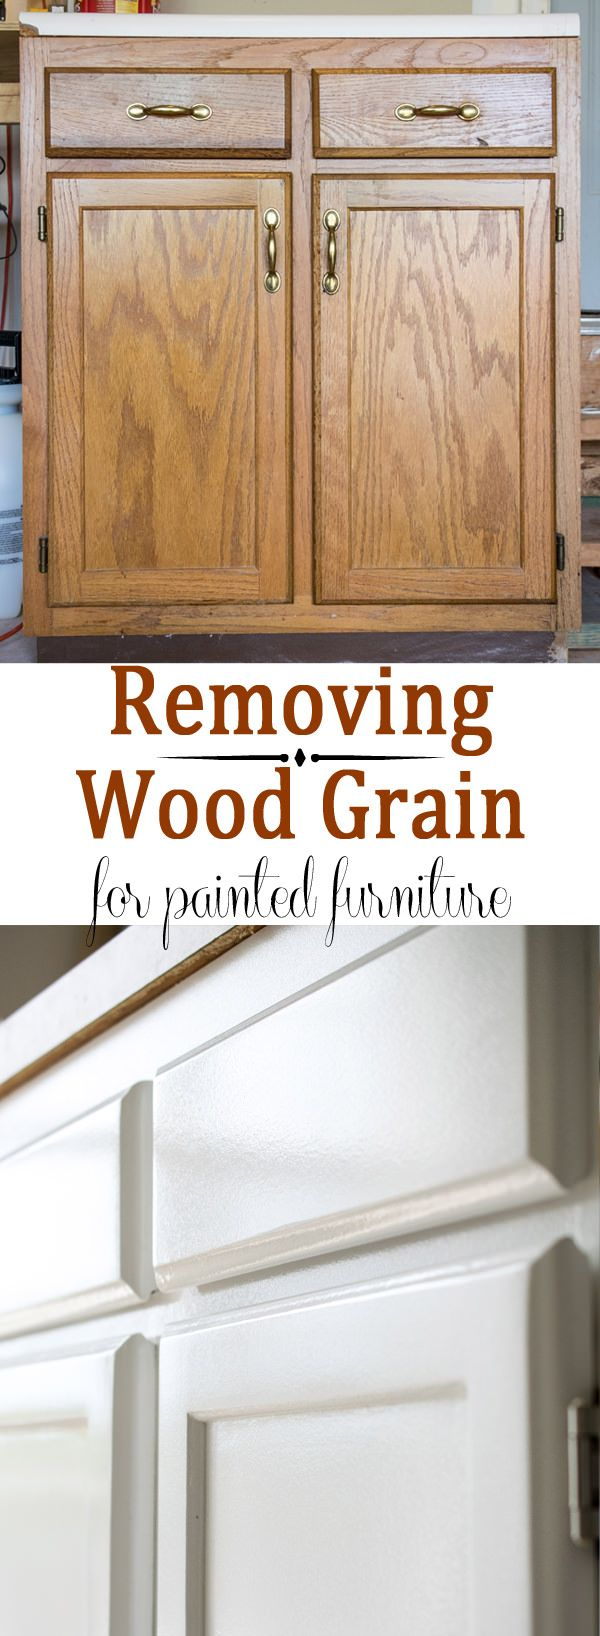 How to remove wood grain | Painting oak cabinets, Wood grain and ...